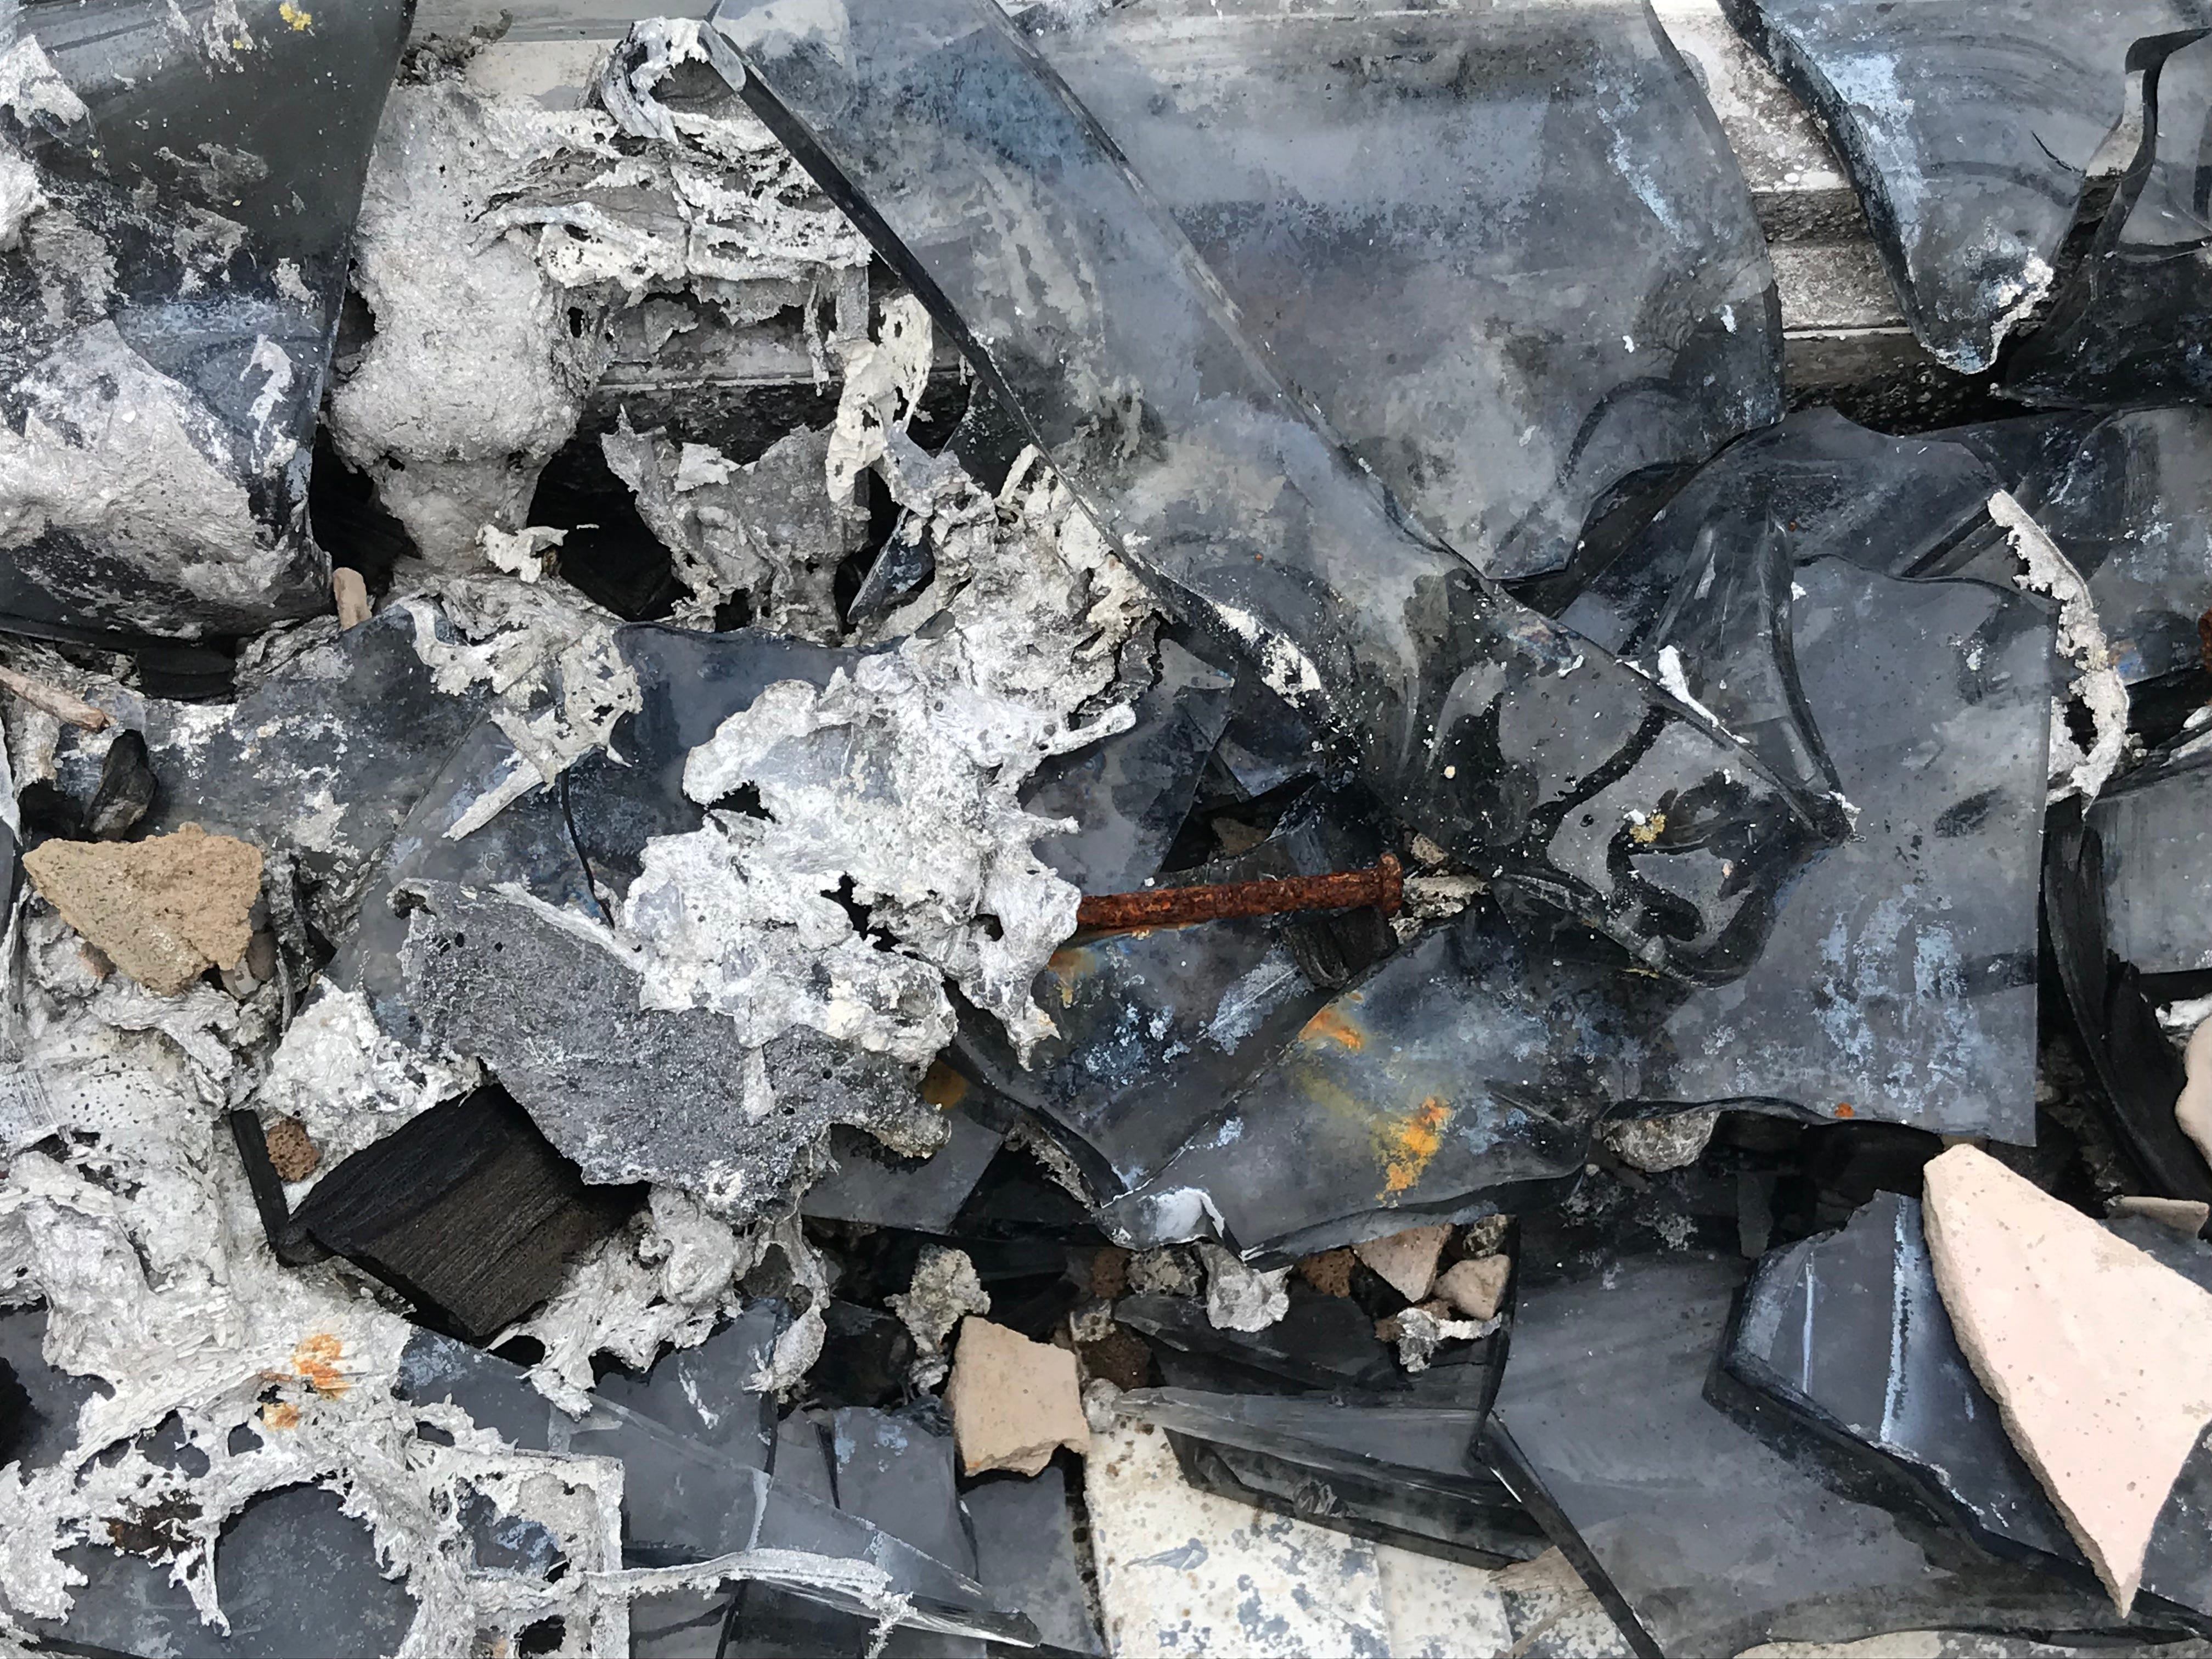 Eight months after fire raced through a 25-acre section of woods south of Briarcliff Lane in south Fort Myers Henry Andreasen's home — the only dwelling destroyed — remains a scorched shell surrounded by piles of rusted and broken debris.